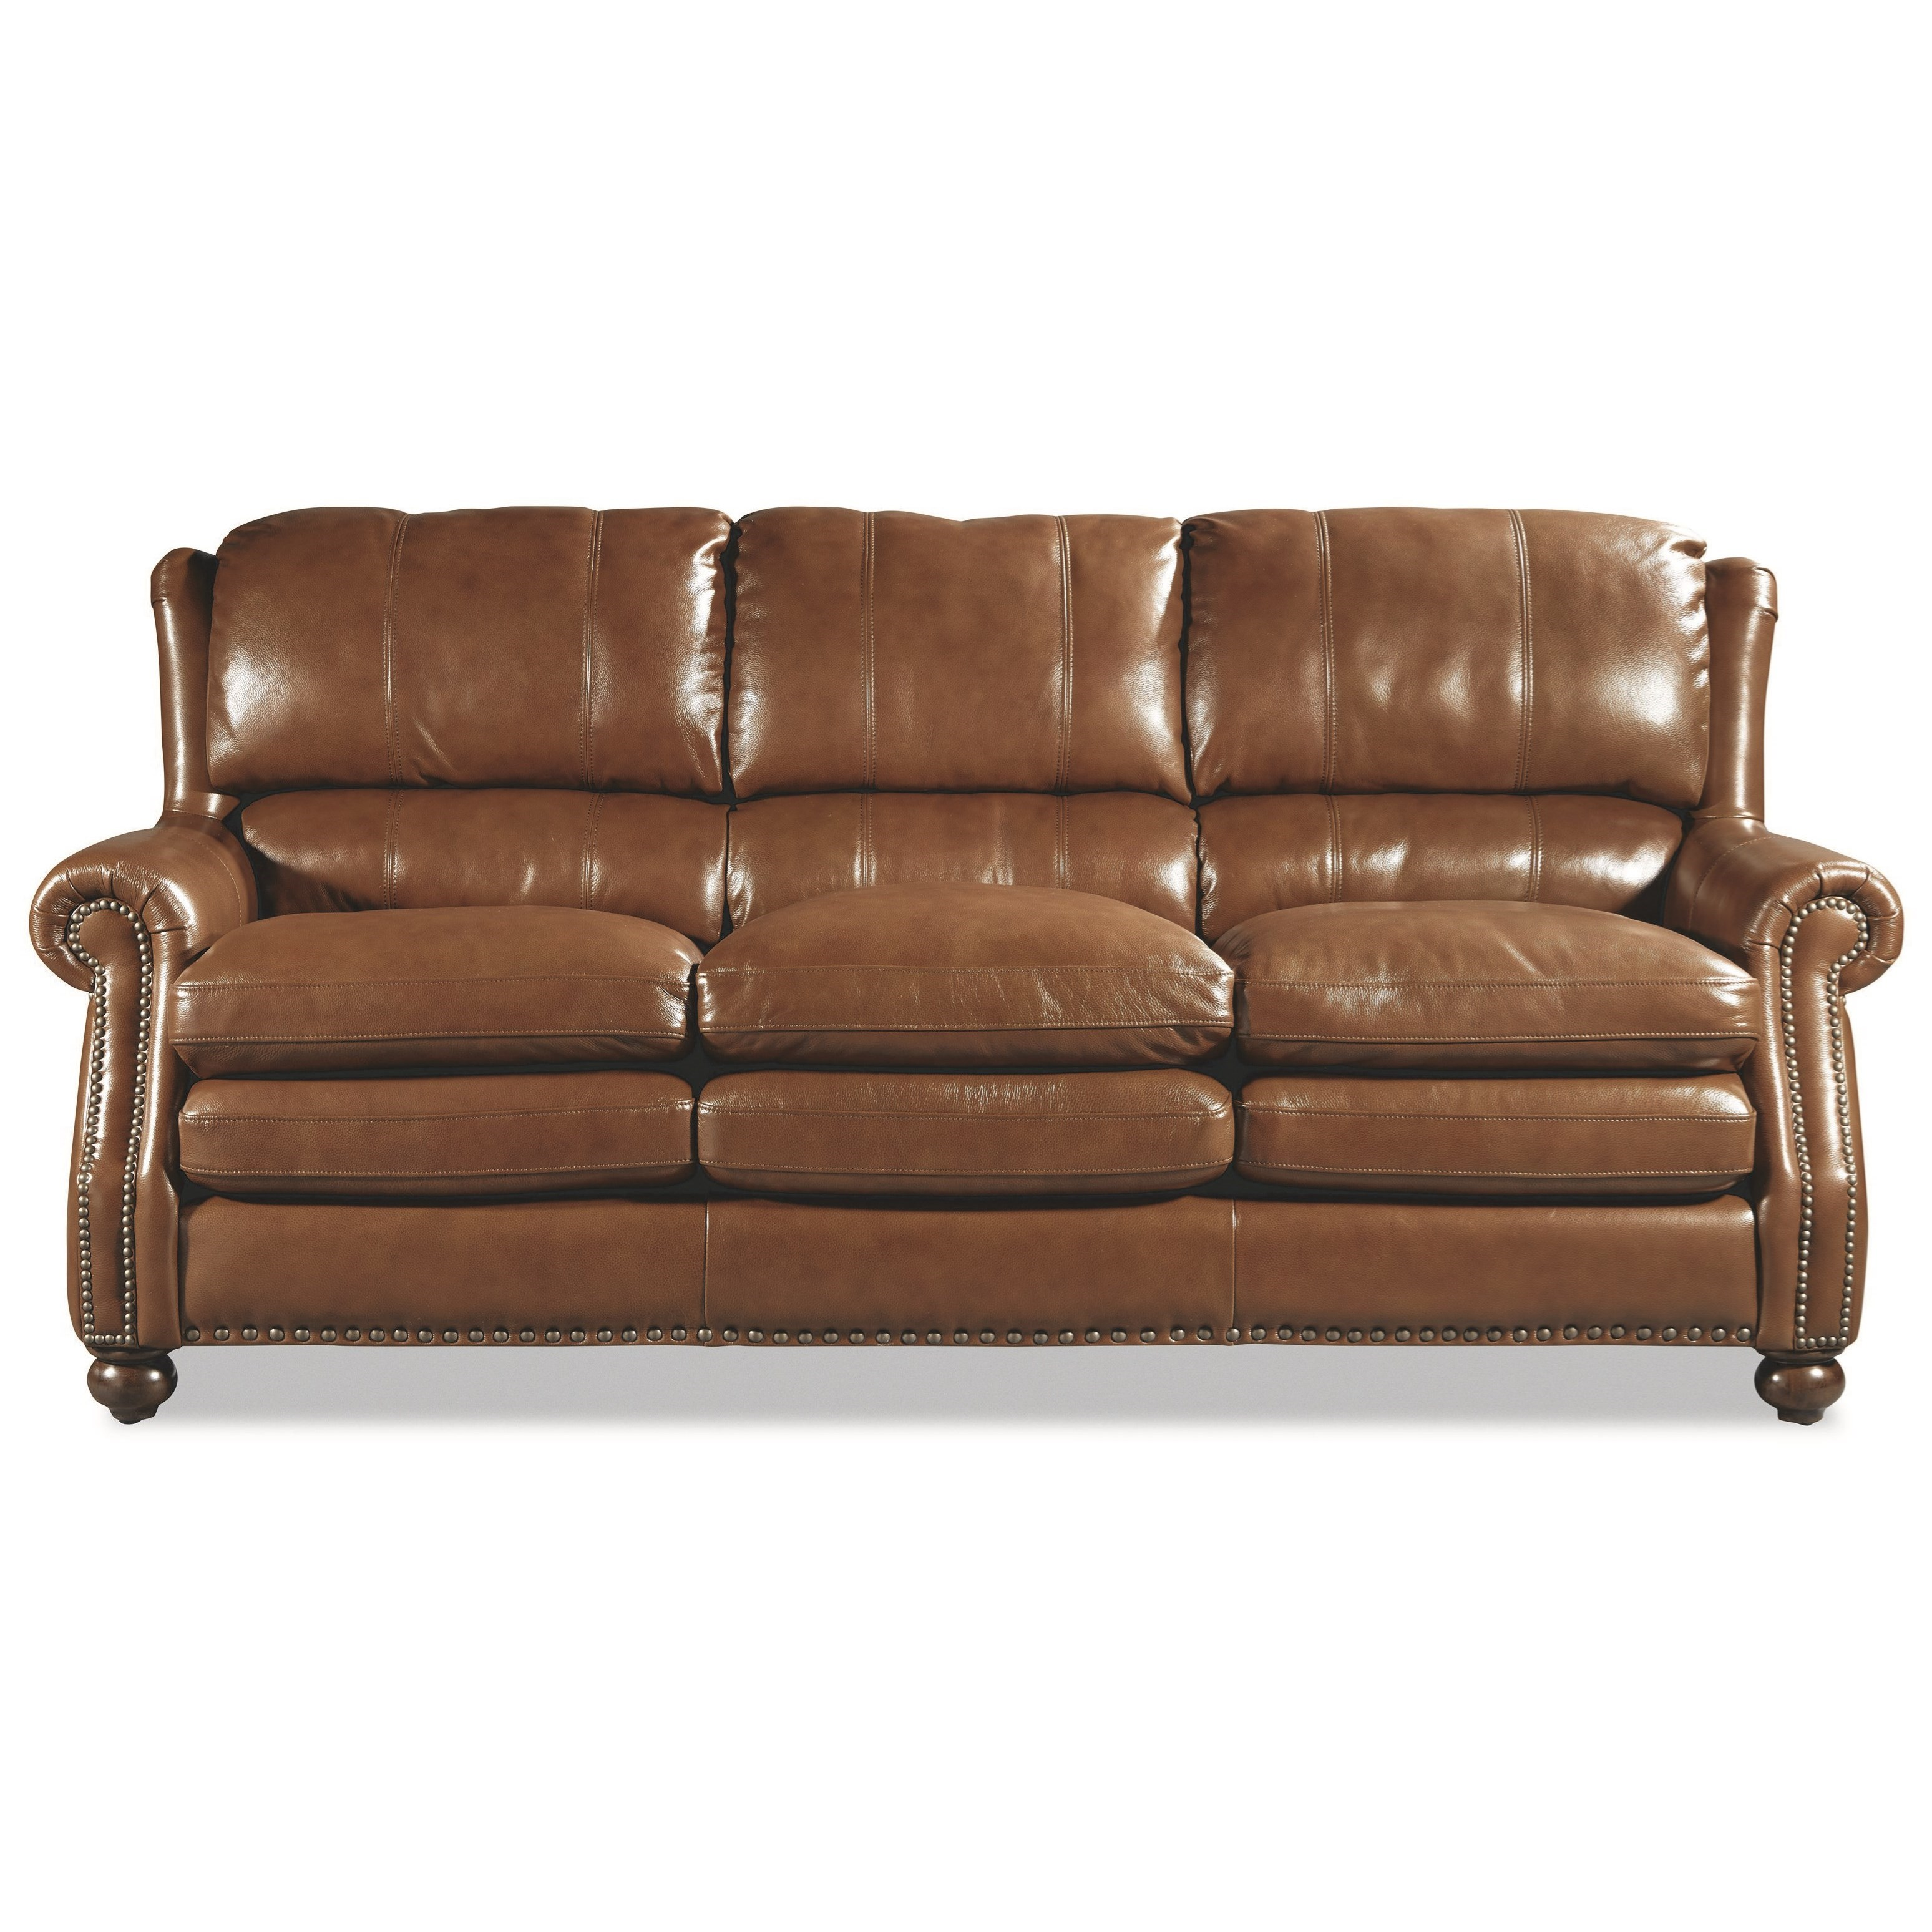 Craftmaster L1646 Traditional Leather Sofa With Bustle Back And Nailhead Trim Belfort